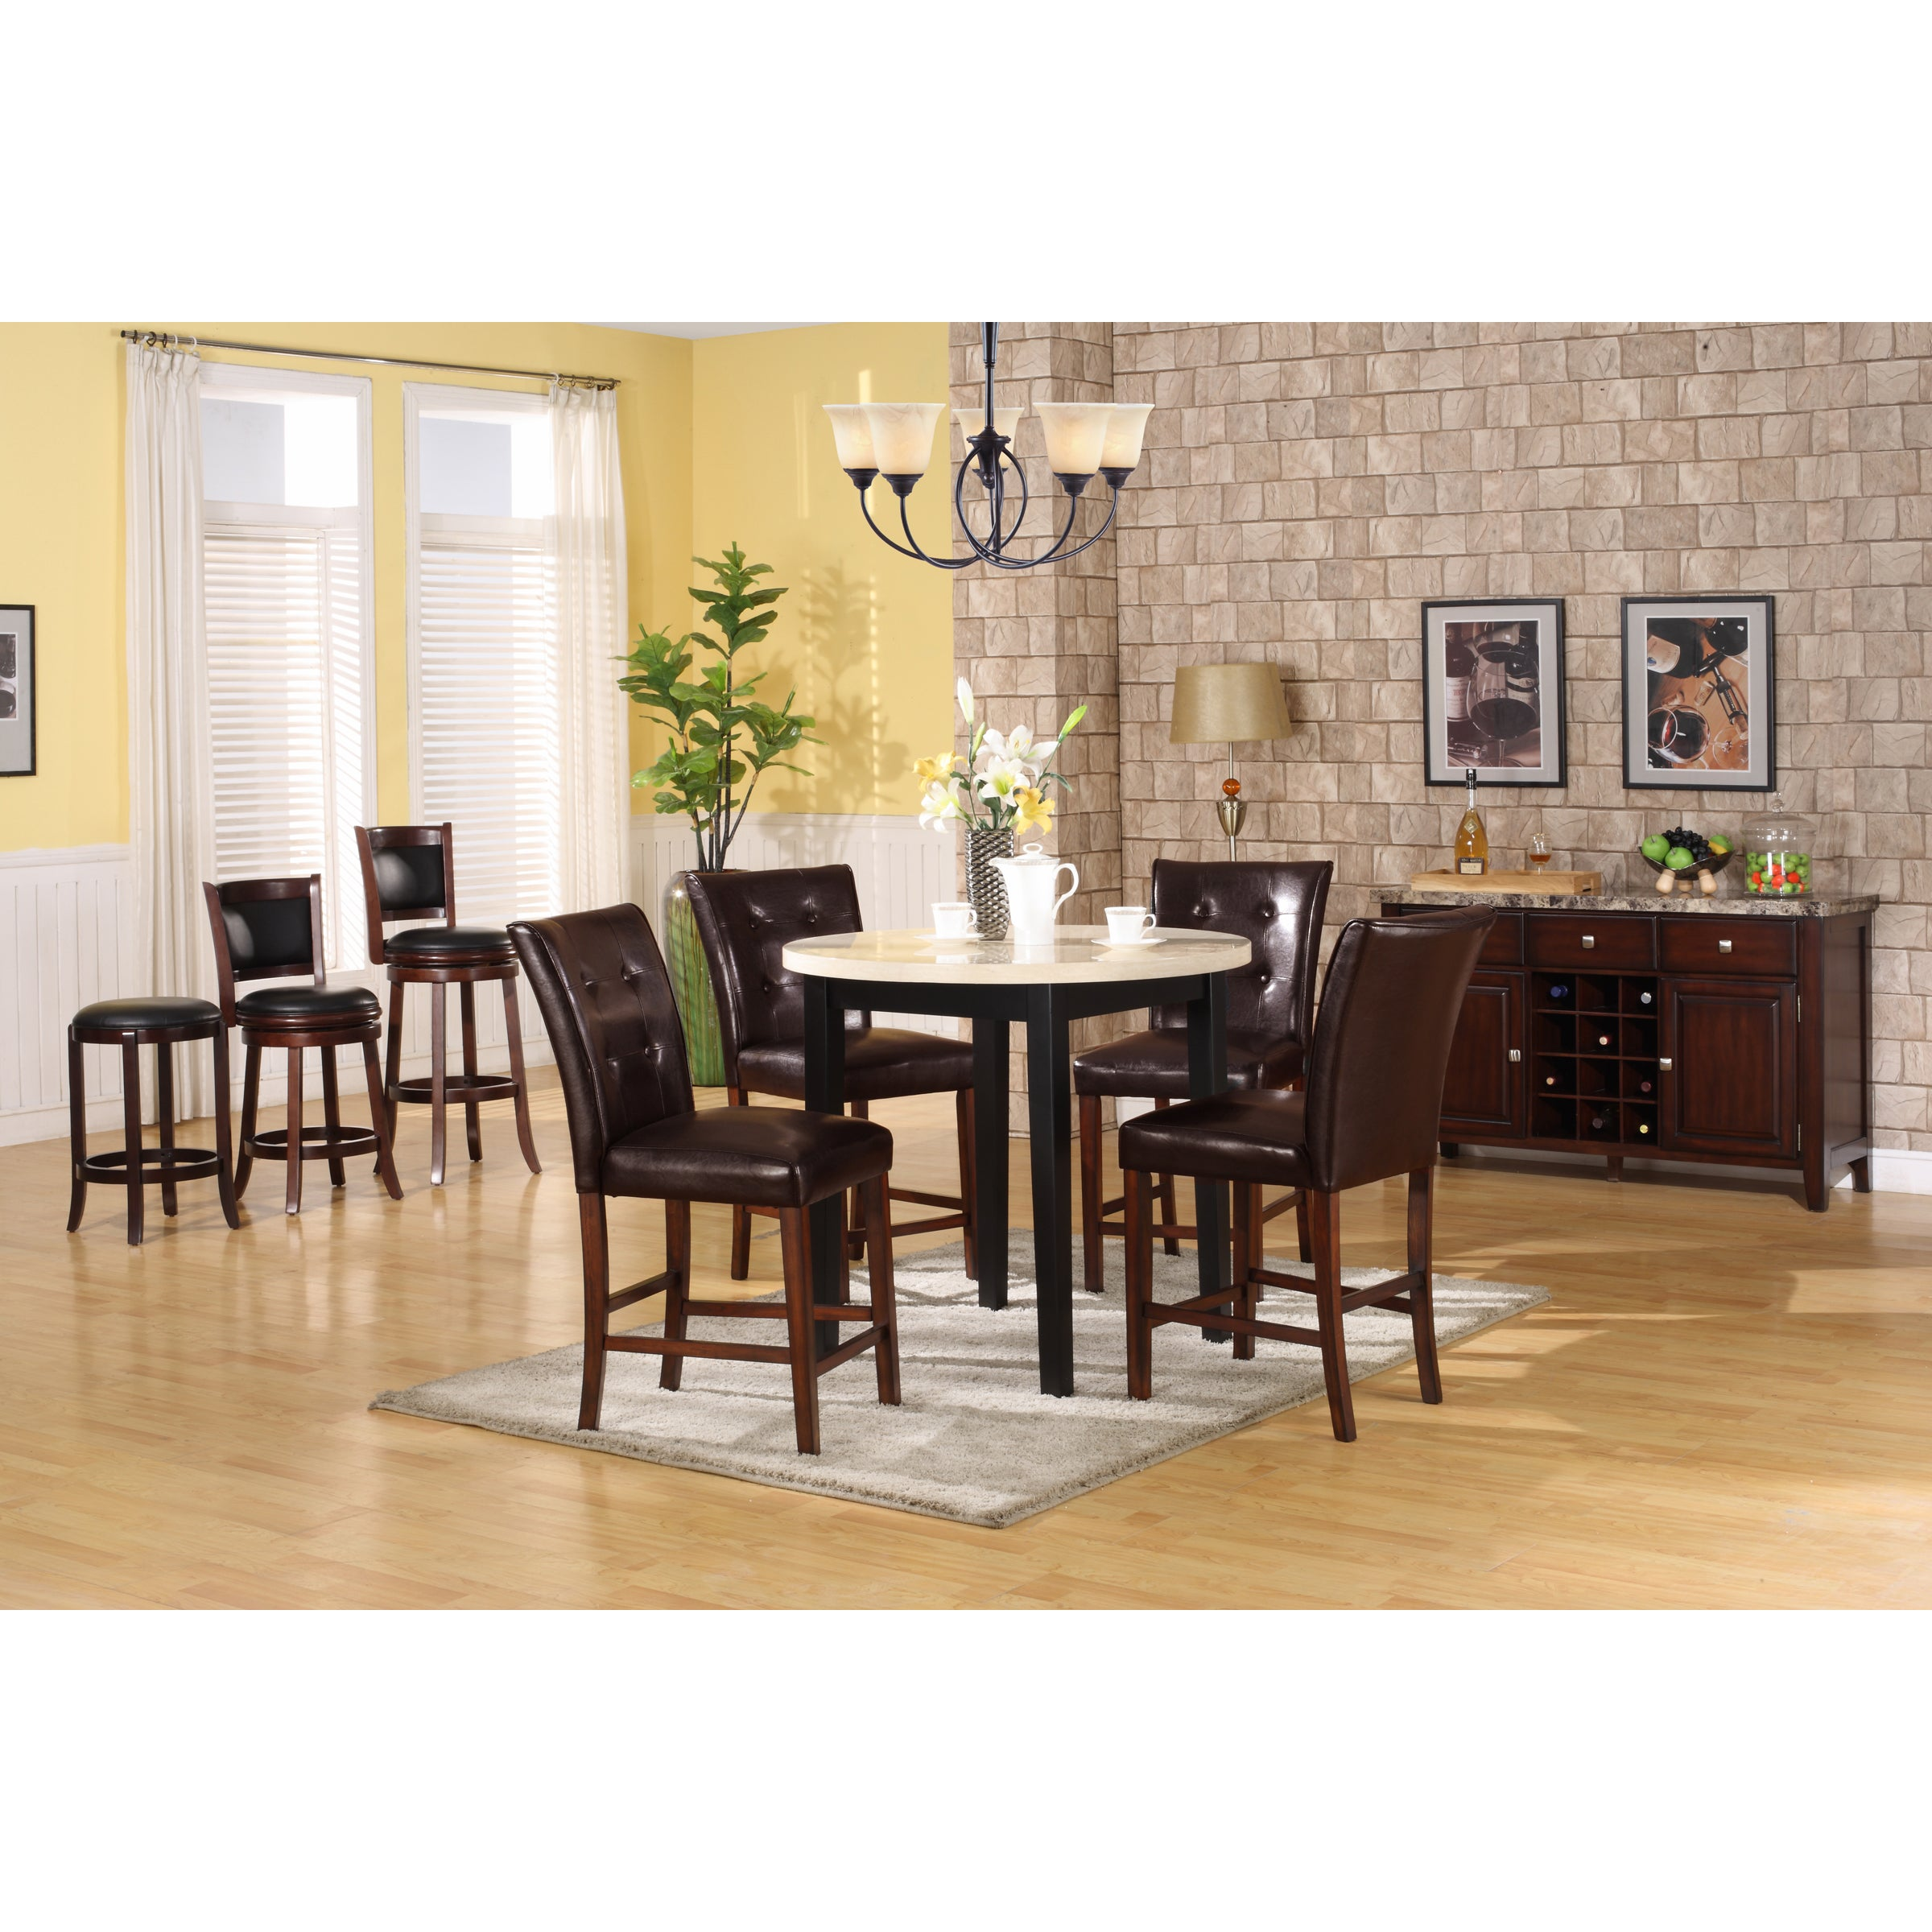 Radian White Faux-marble Table with Brown Barstools